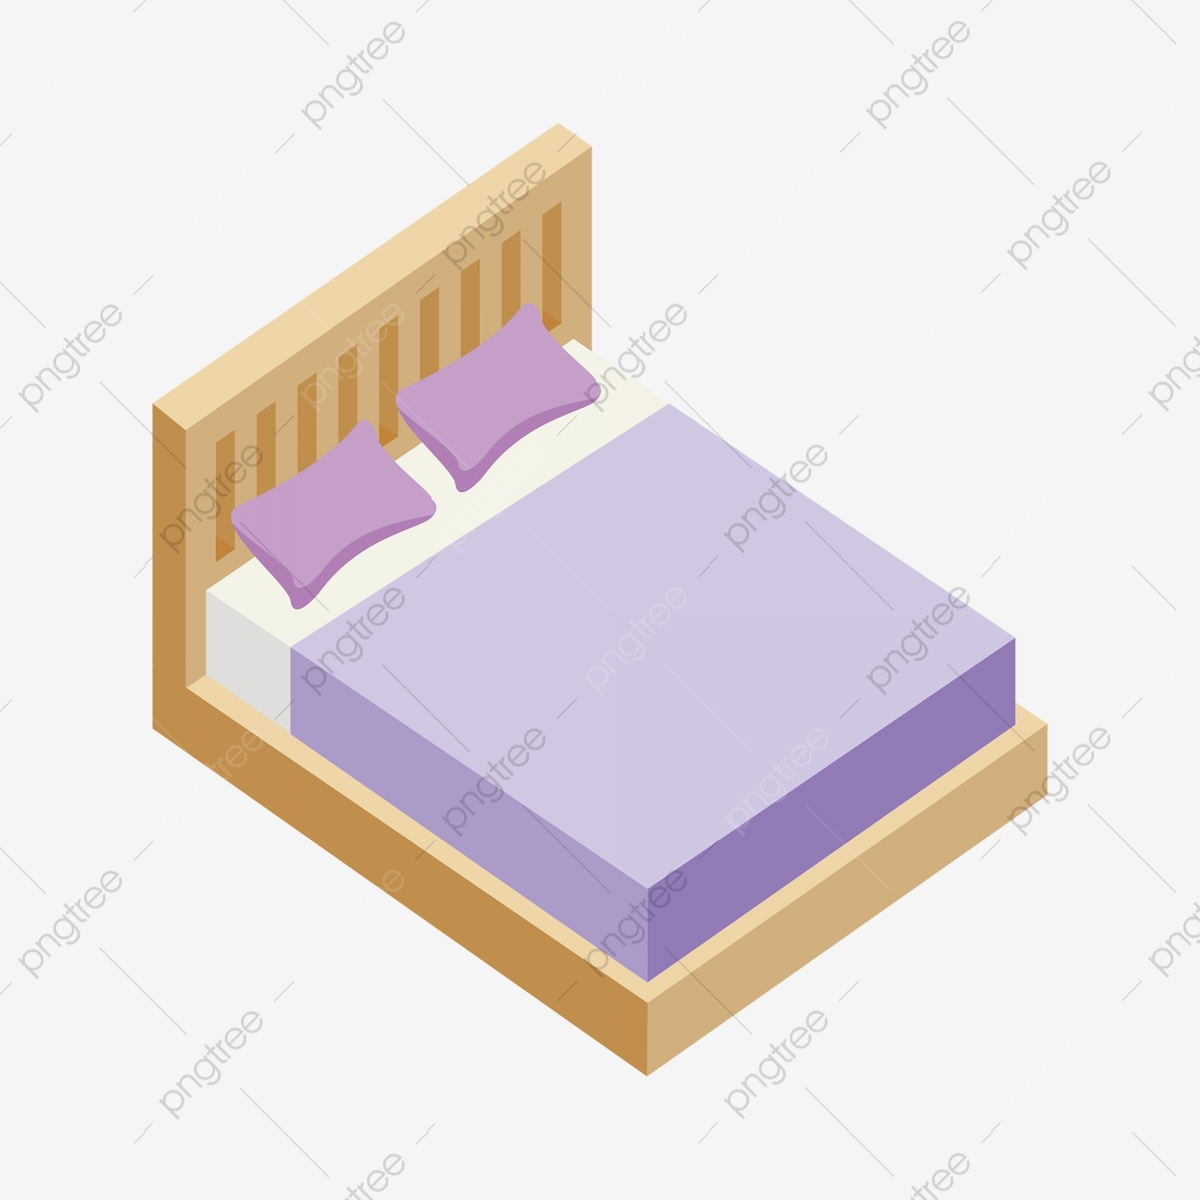 2 5d Purple Wood Bed Furniture Bed Clipart Purple Bed Bed Png And Vector With Transparent Background For Free Download